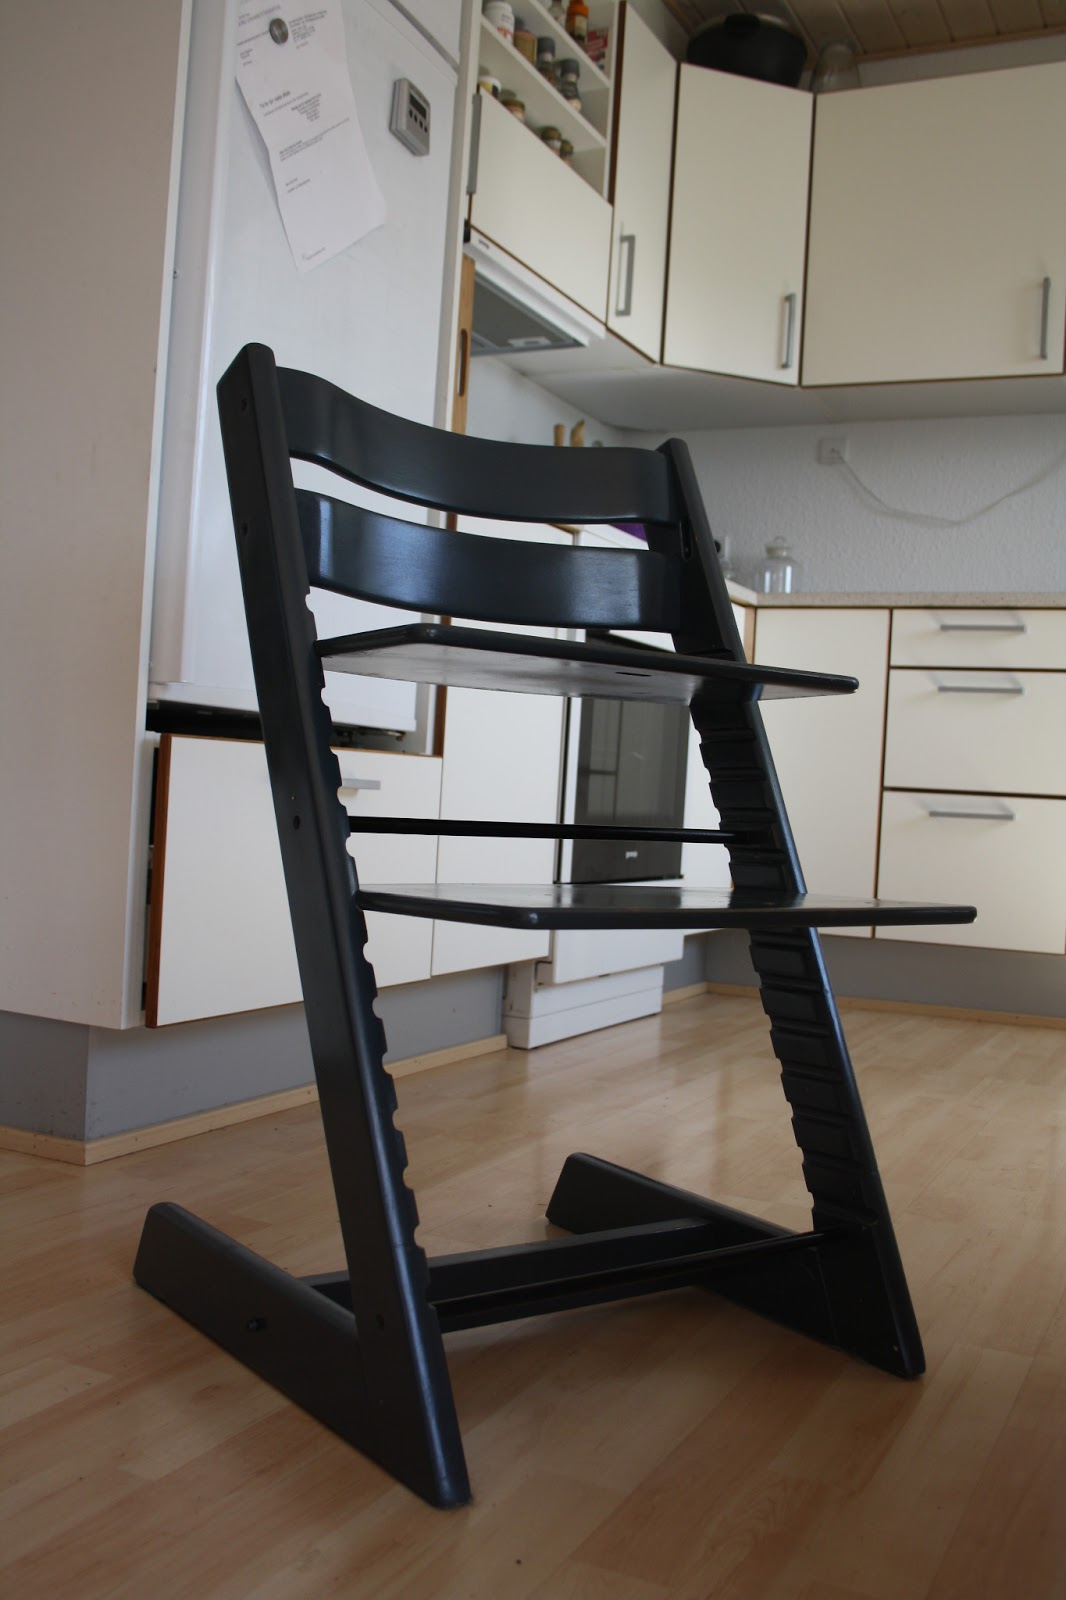 hverdags mor diy hynde til stokke trip trap stol. Black Bedroom Furniture Sets. Home Design Ideas